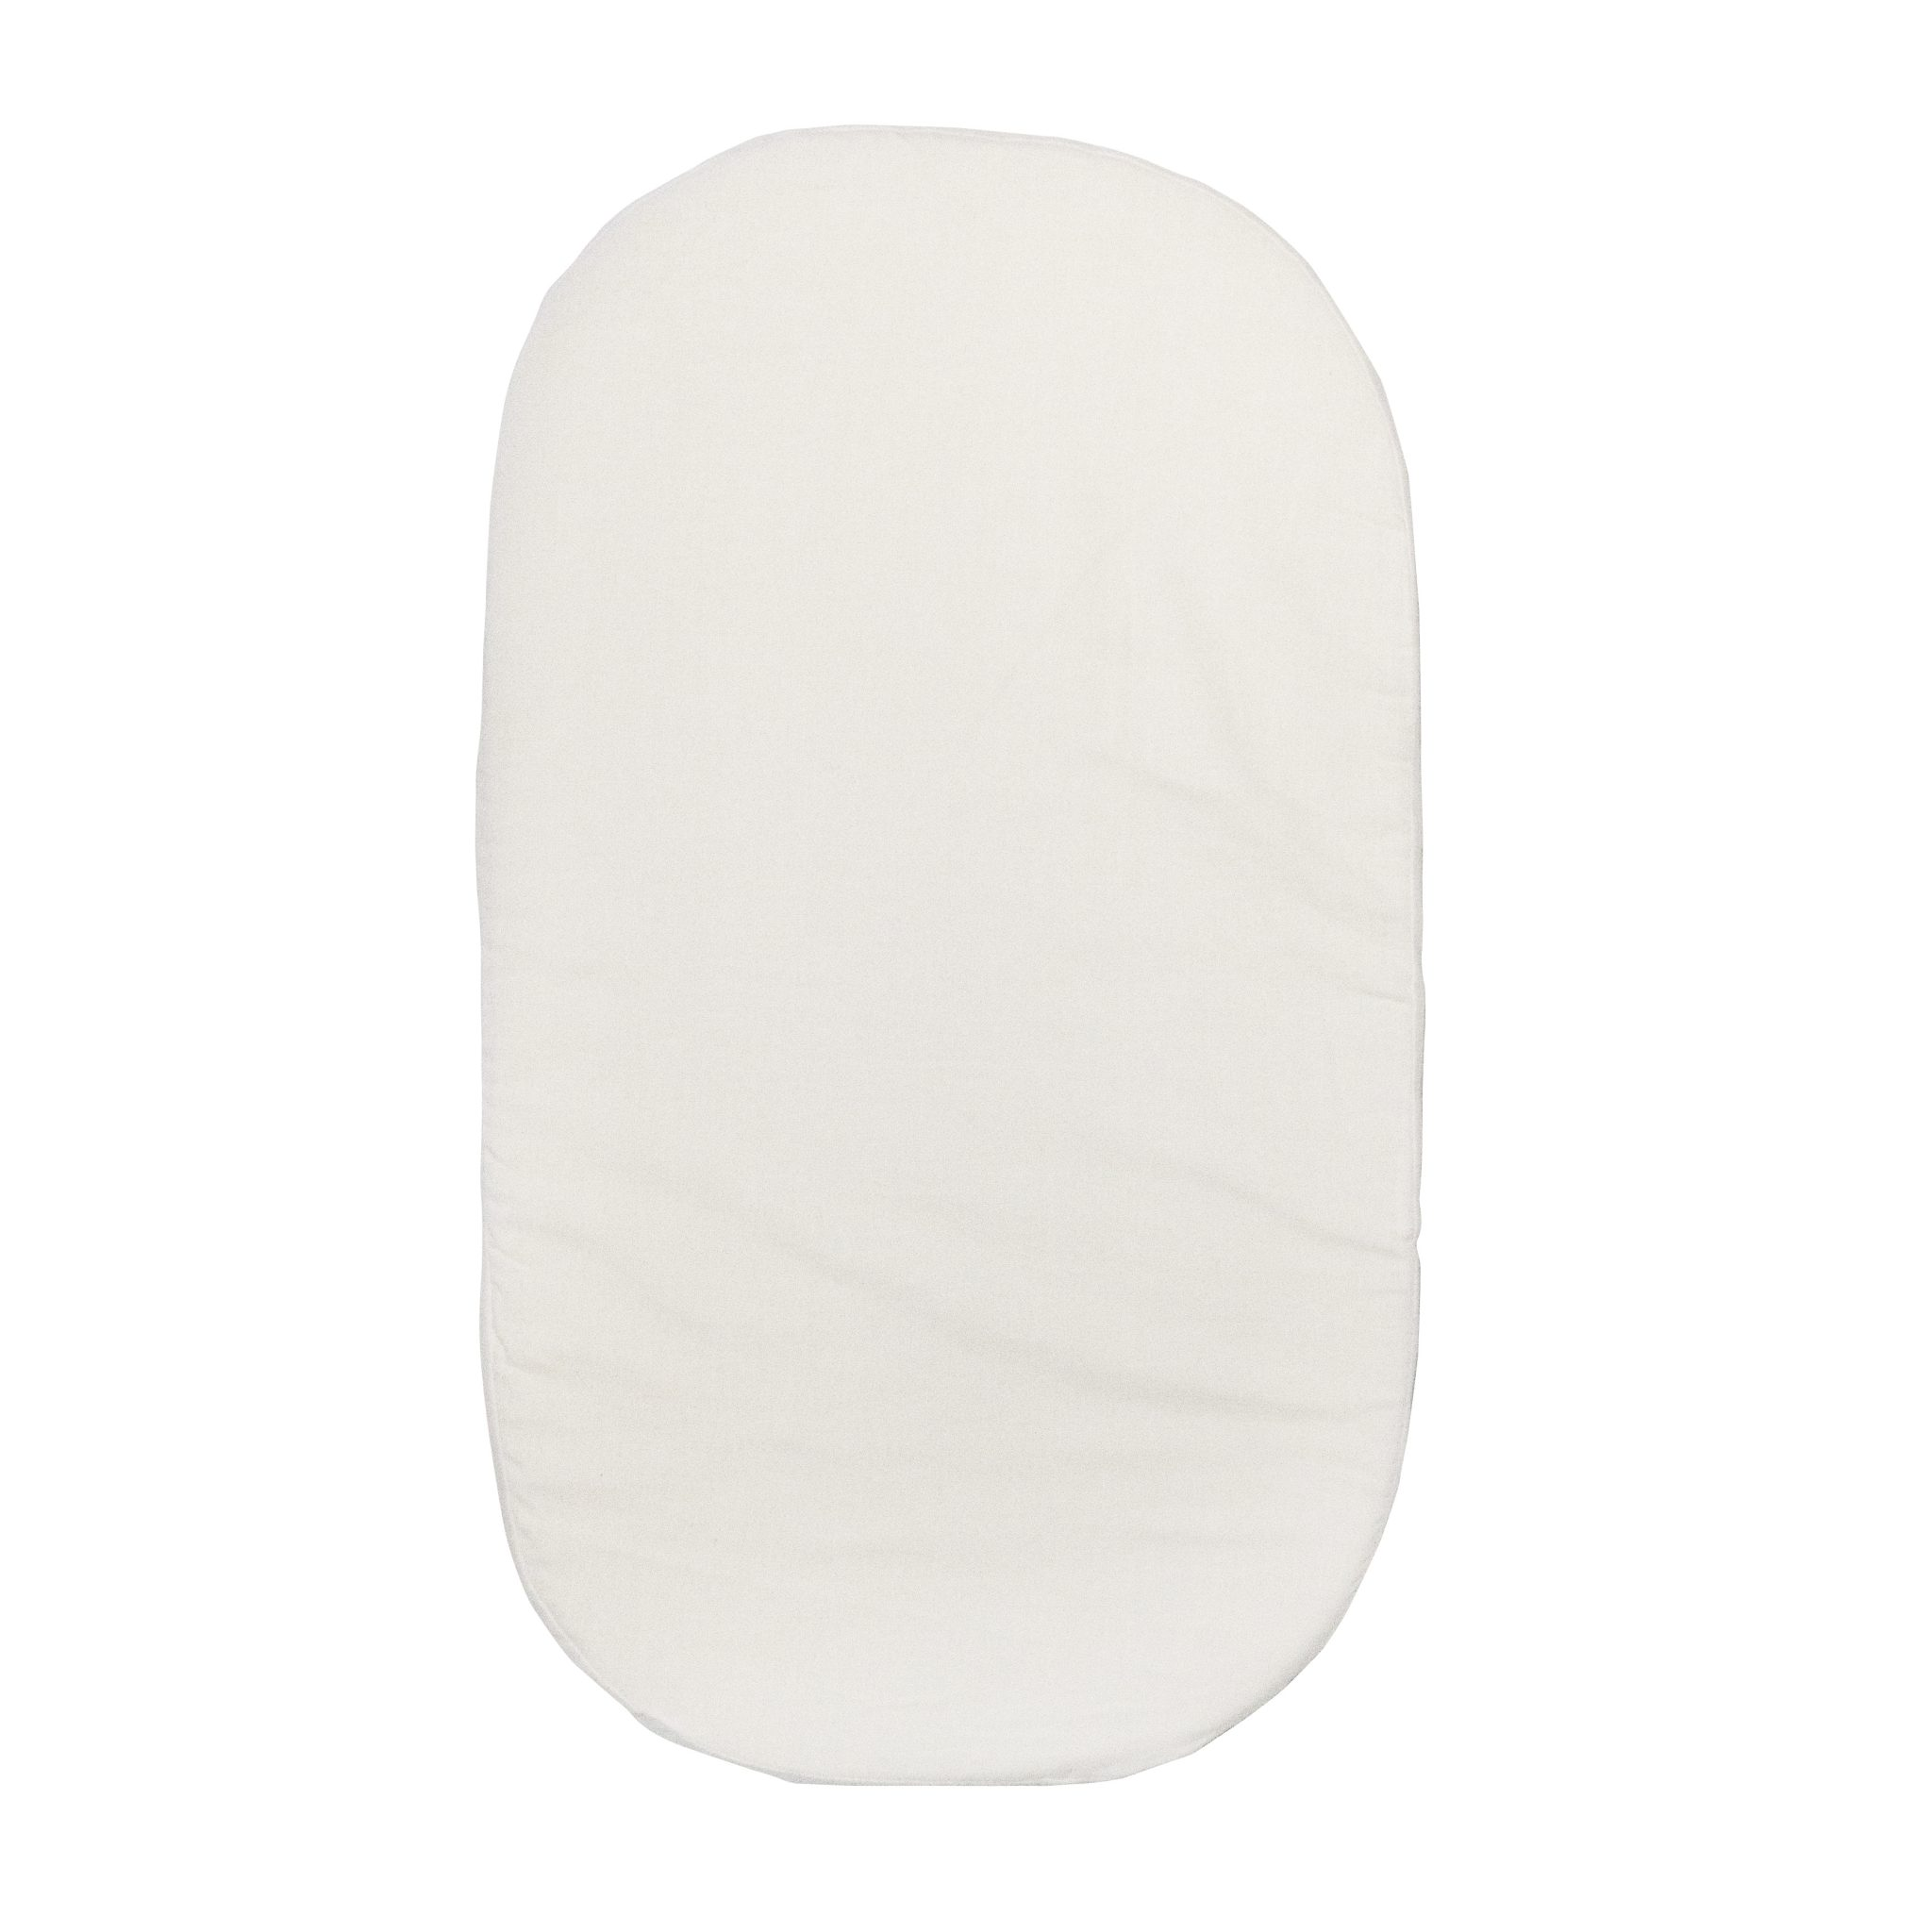 Matress for Dolls Bed from Sebra